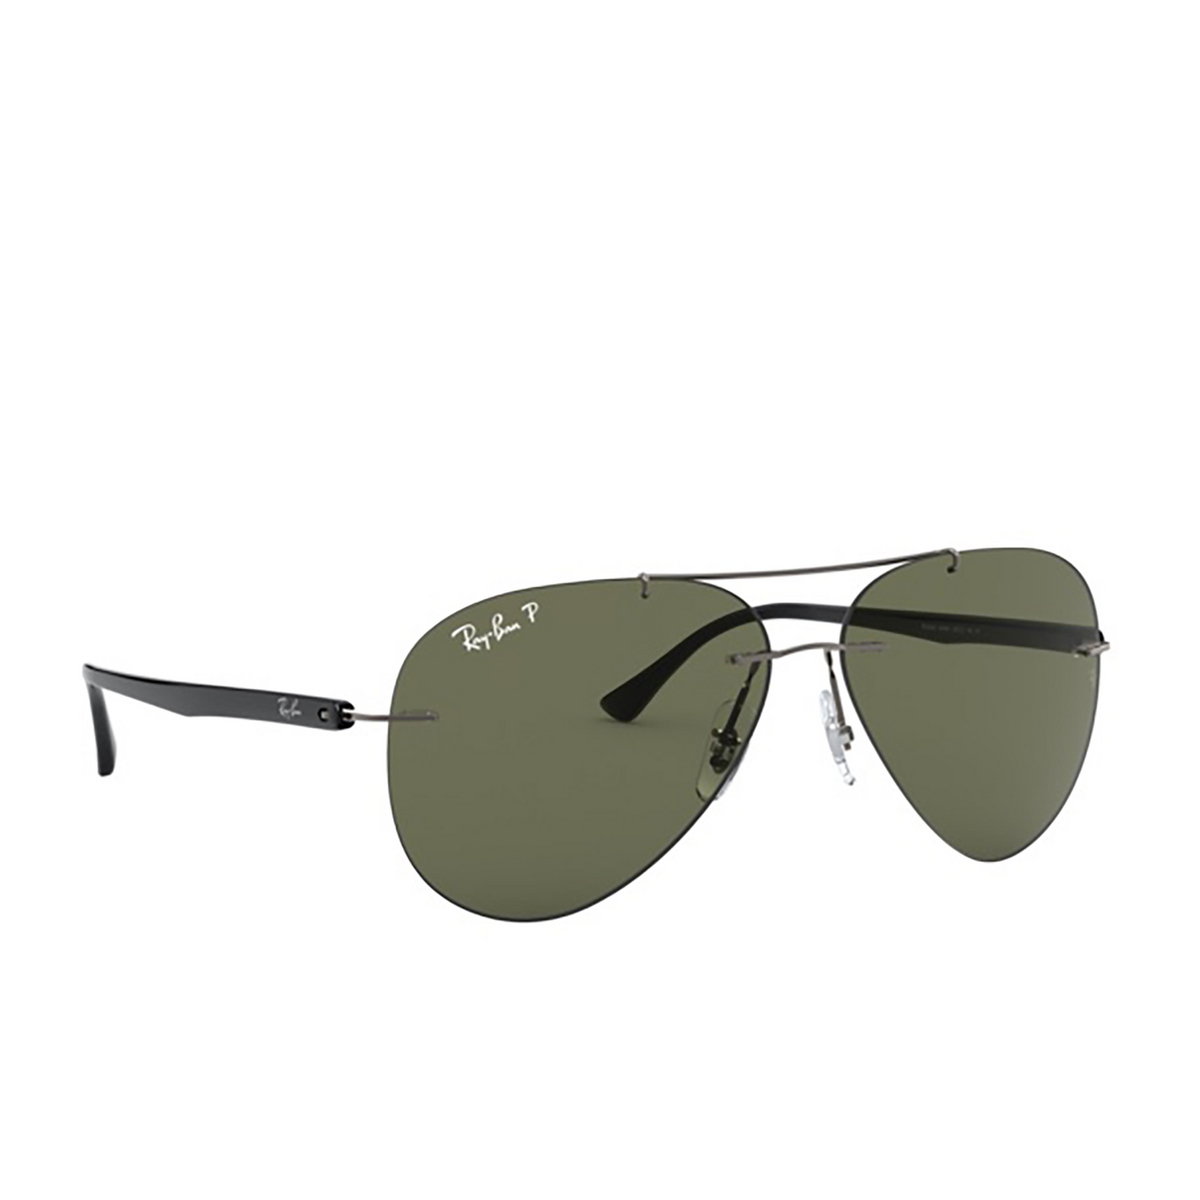 ray-ban-rb8058-004-9a (1)